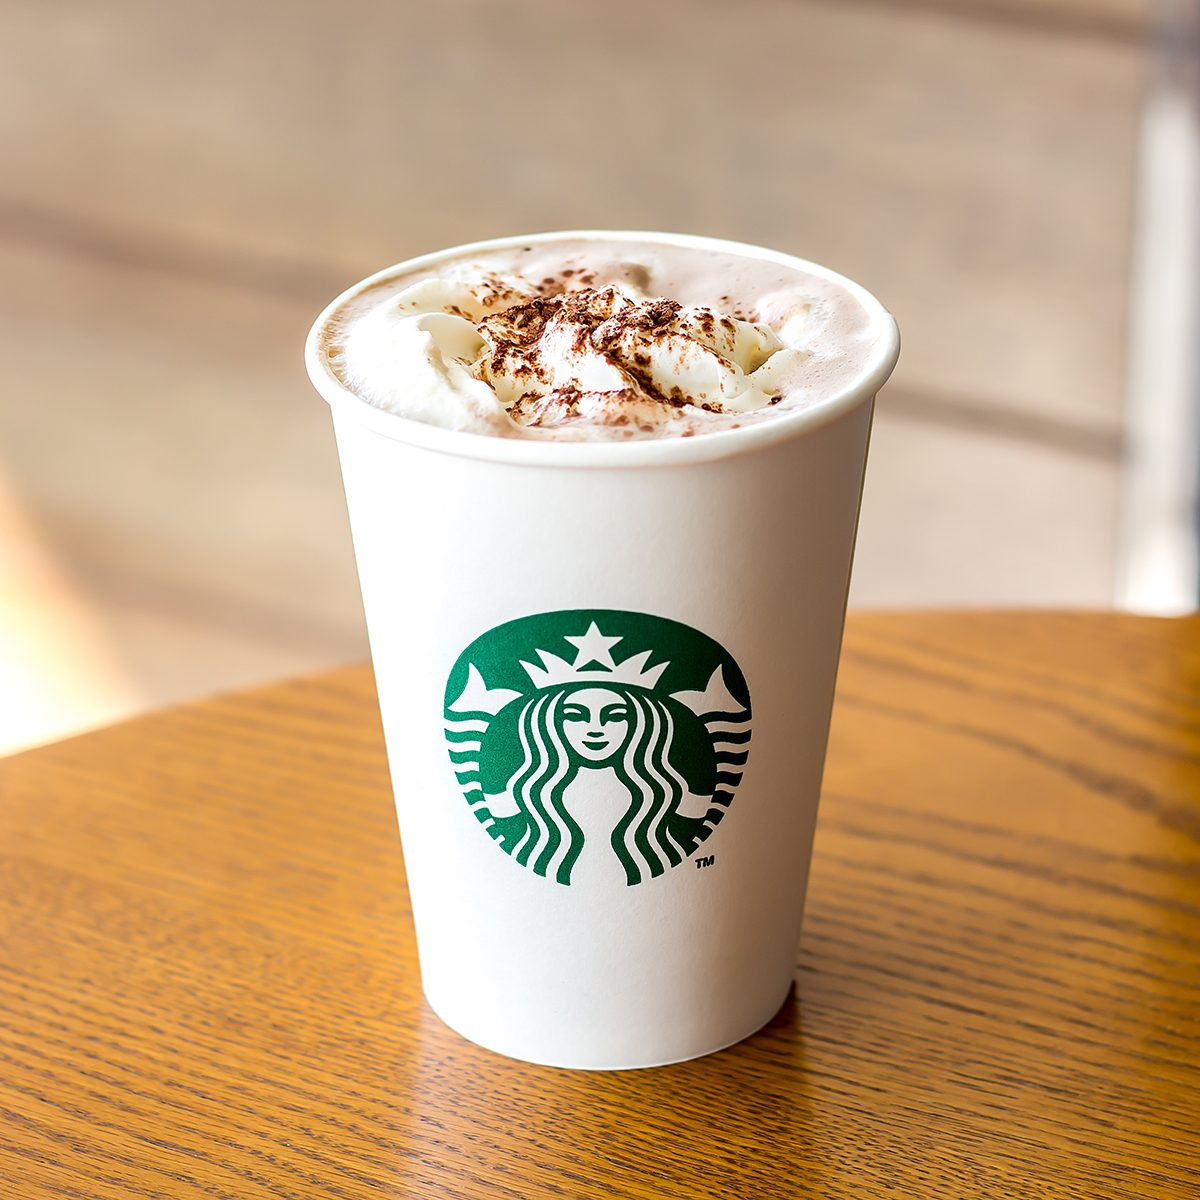 Starbucks Hot chocolate and whipping cream in white paper cup on wooden table